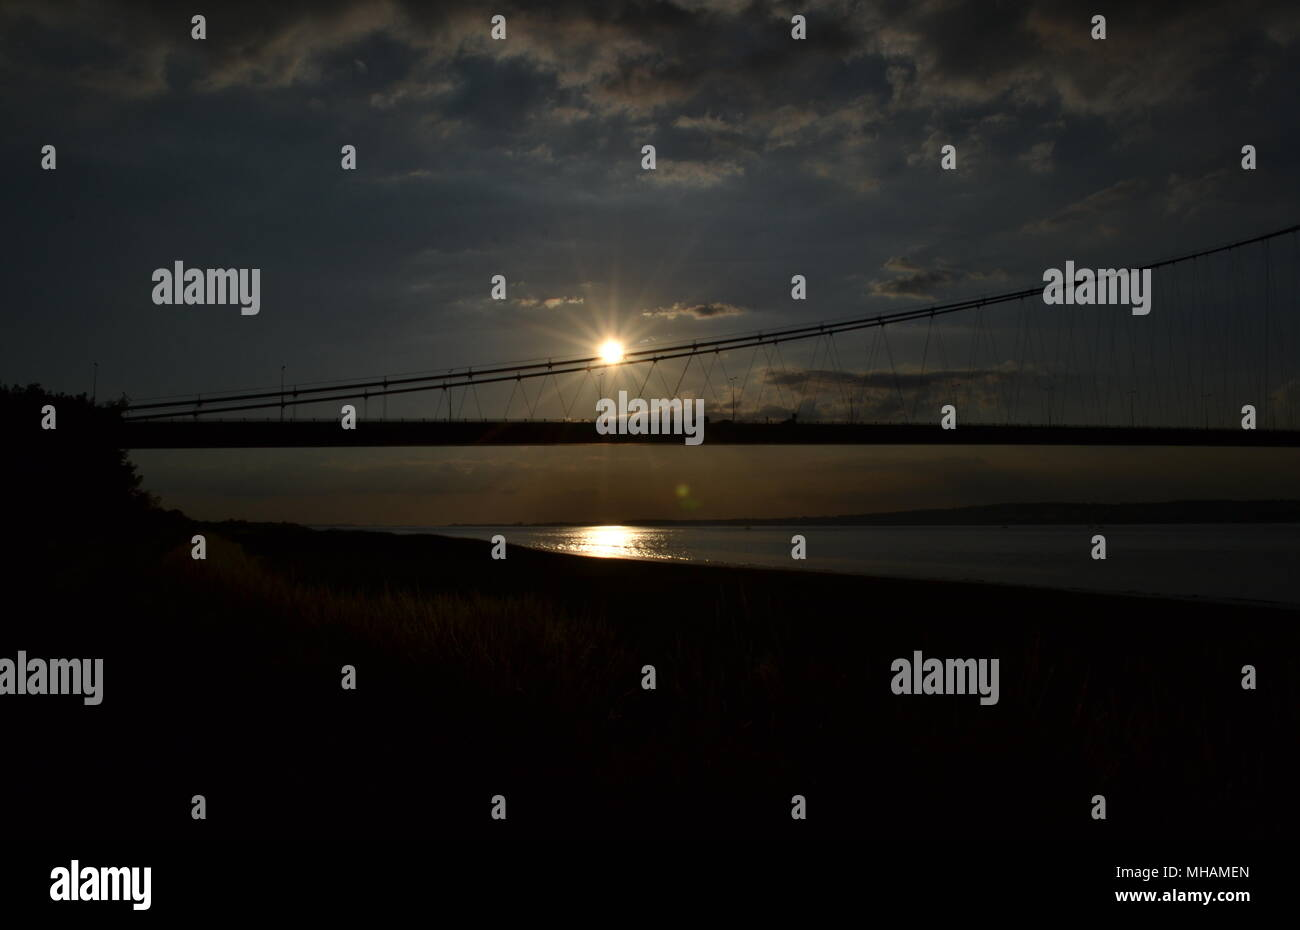 An image showing the humber bridge with the sun dawning in the distance - Stock Image